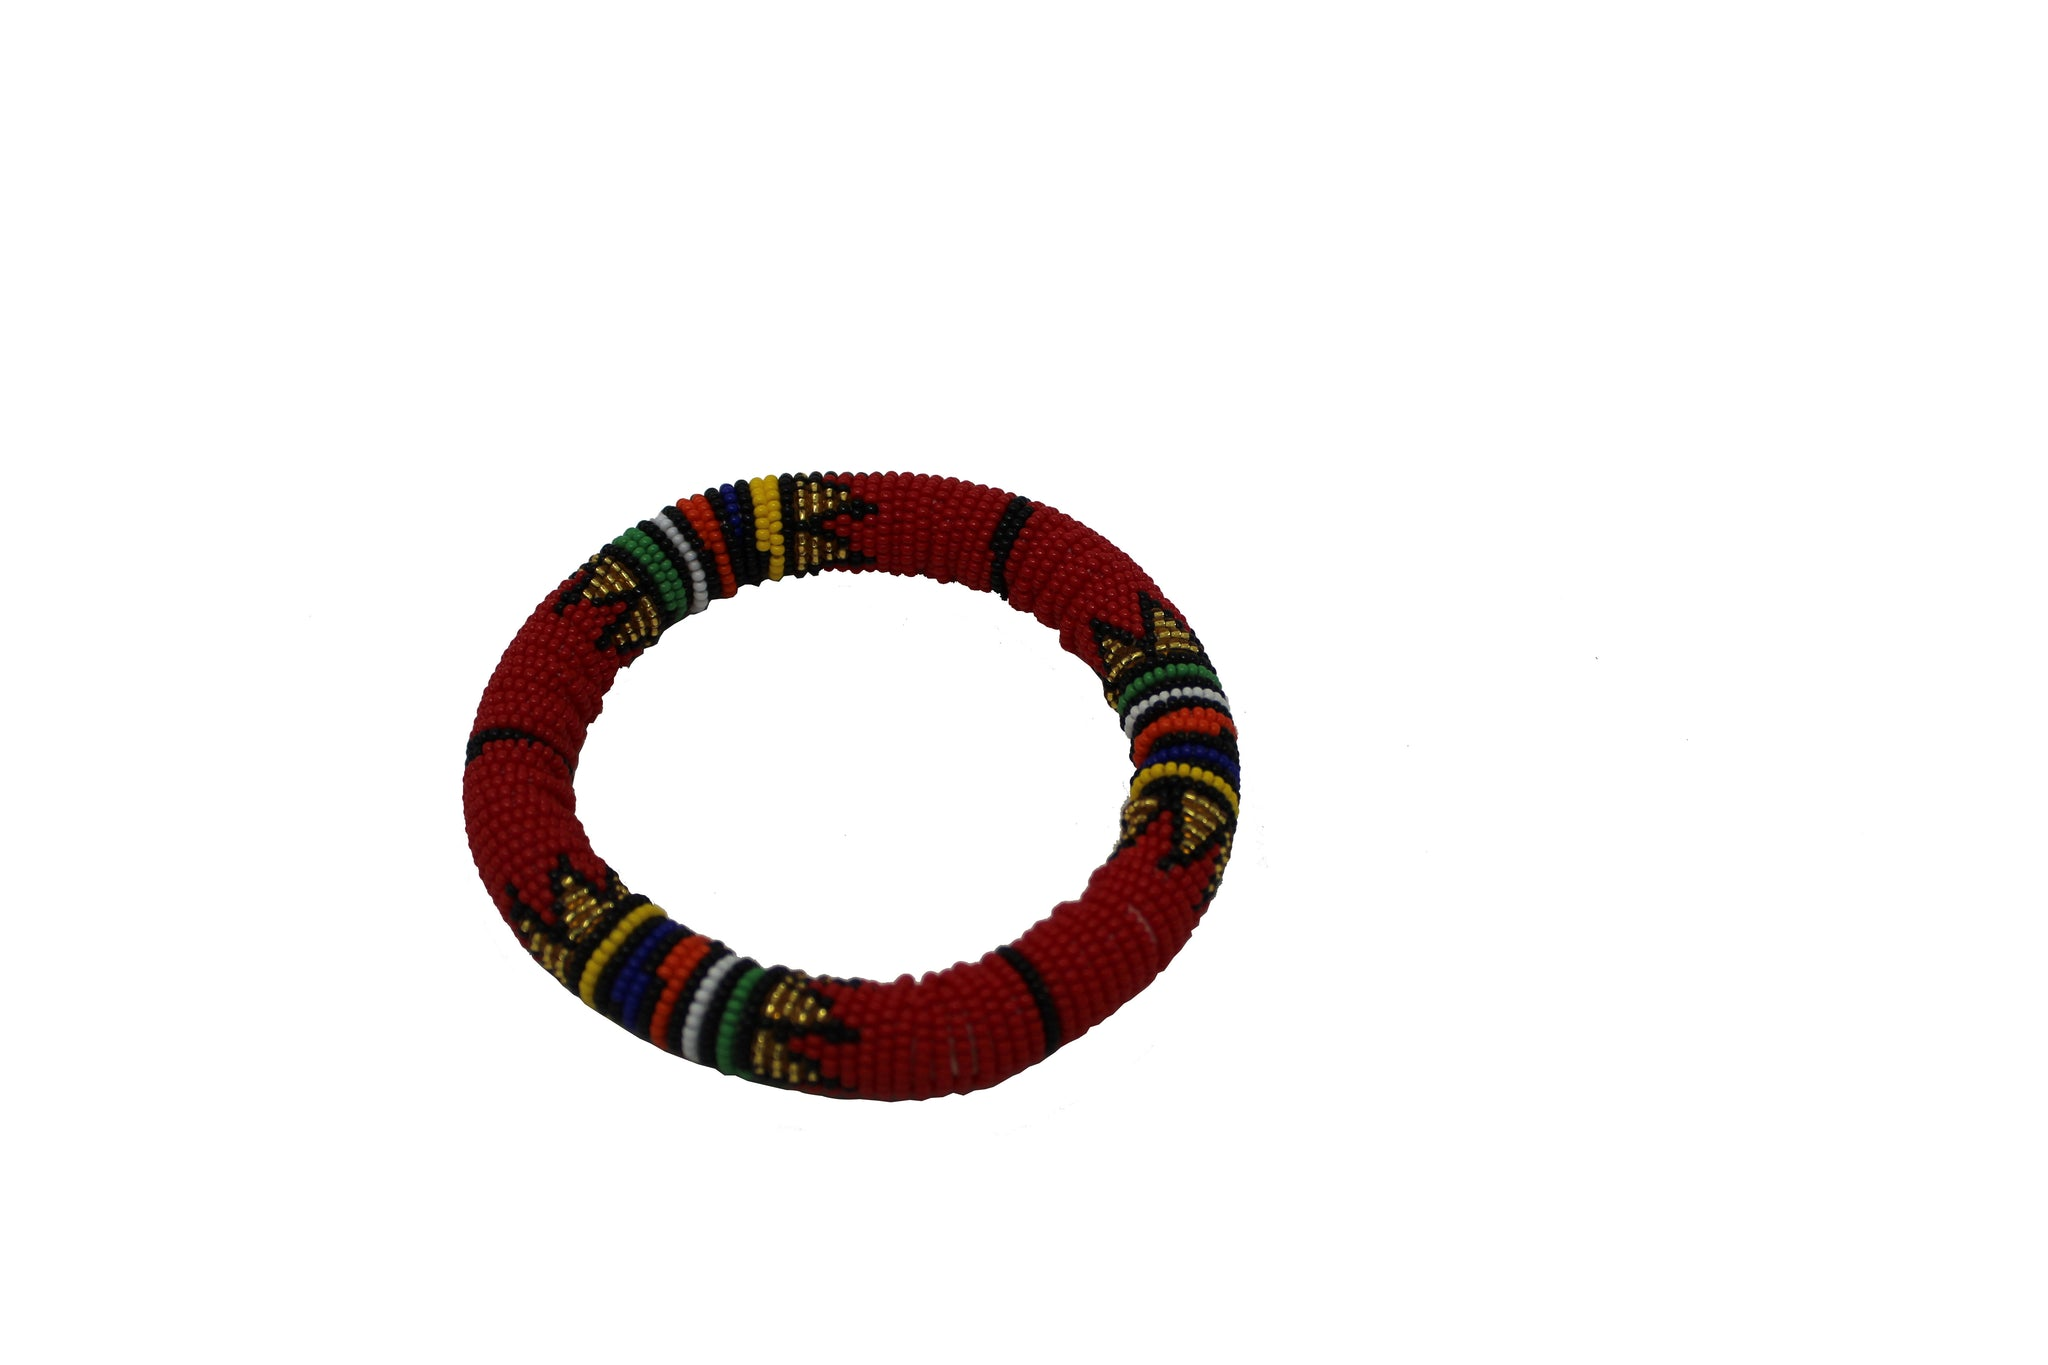 Red & Gold-Thick Rolled Braceletroll handmade  geometric jewelry  african design  for women and girls